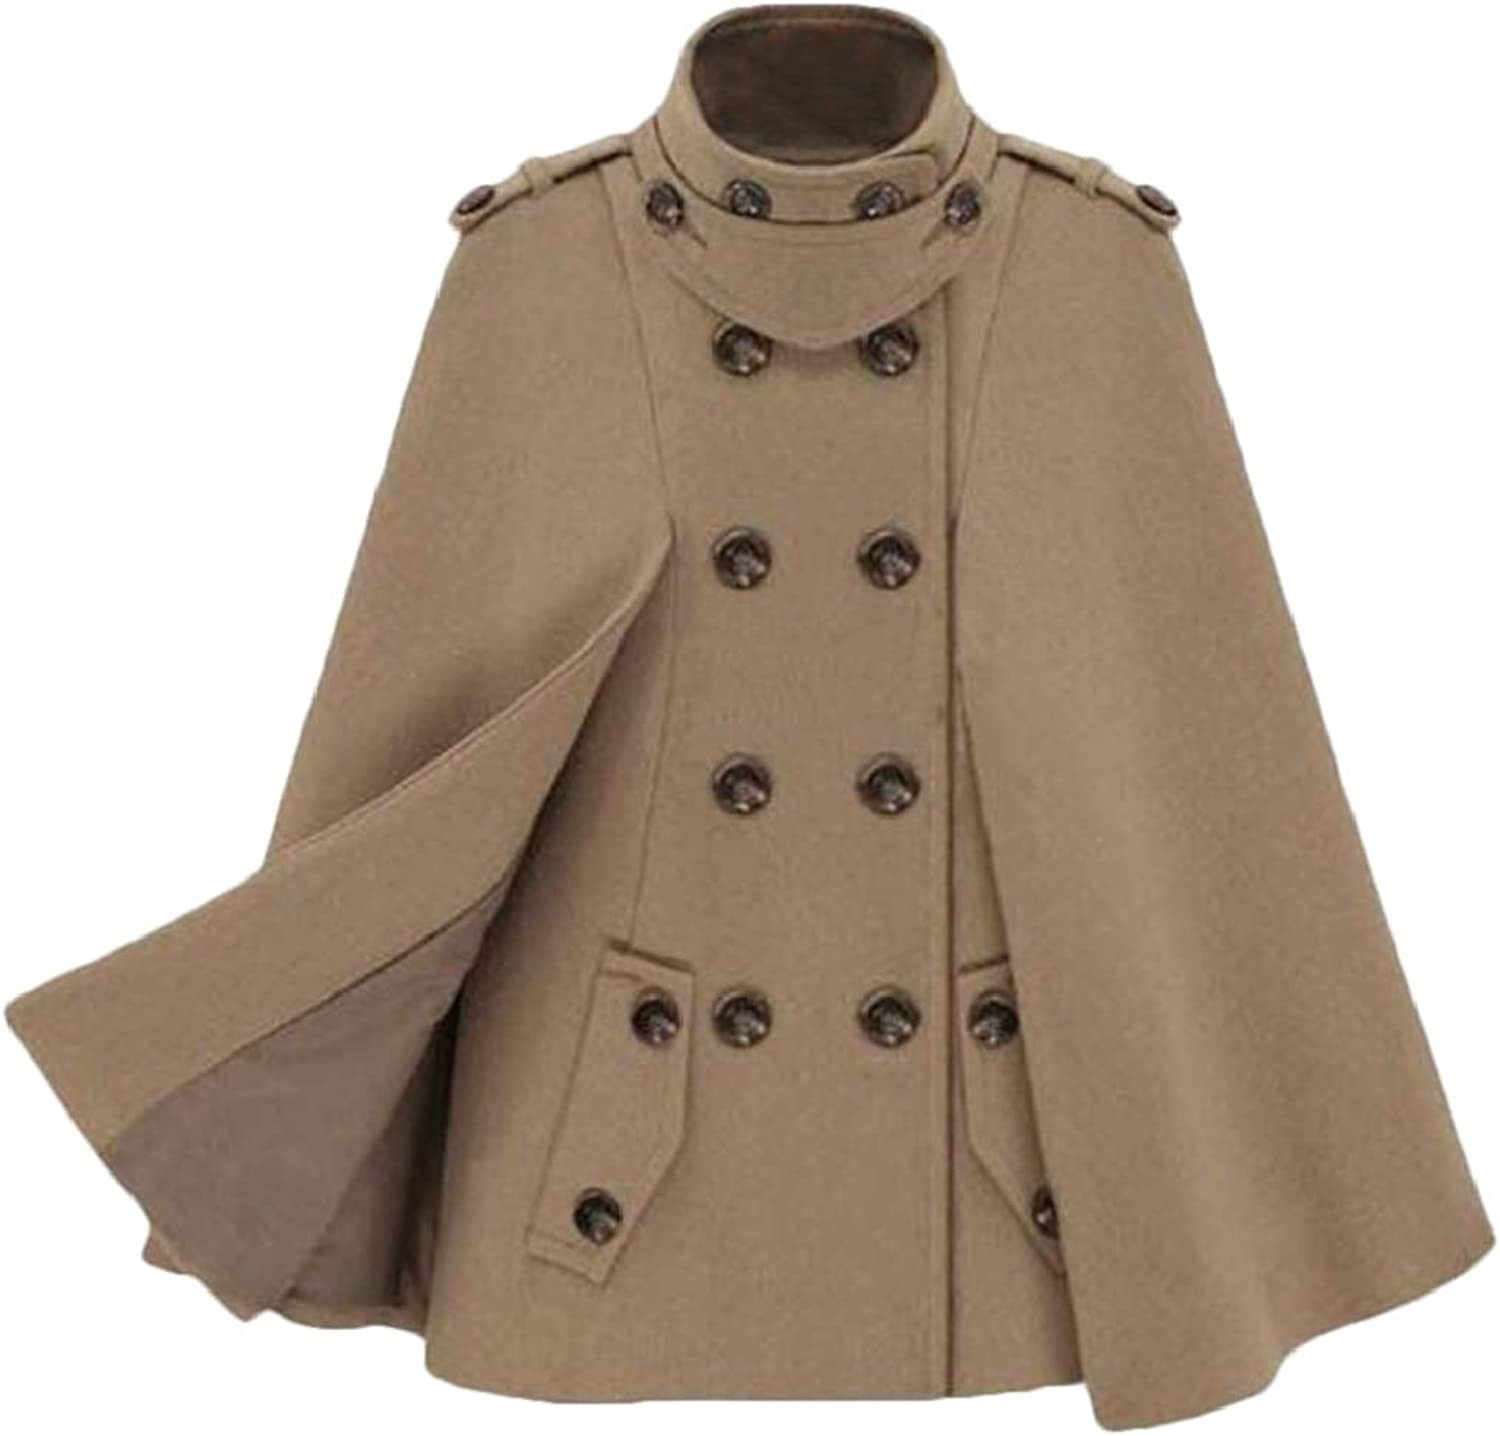 Twcx Women Double Breasted Cloak Stylish Capes Trench Coat Jacket Overcoat